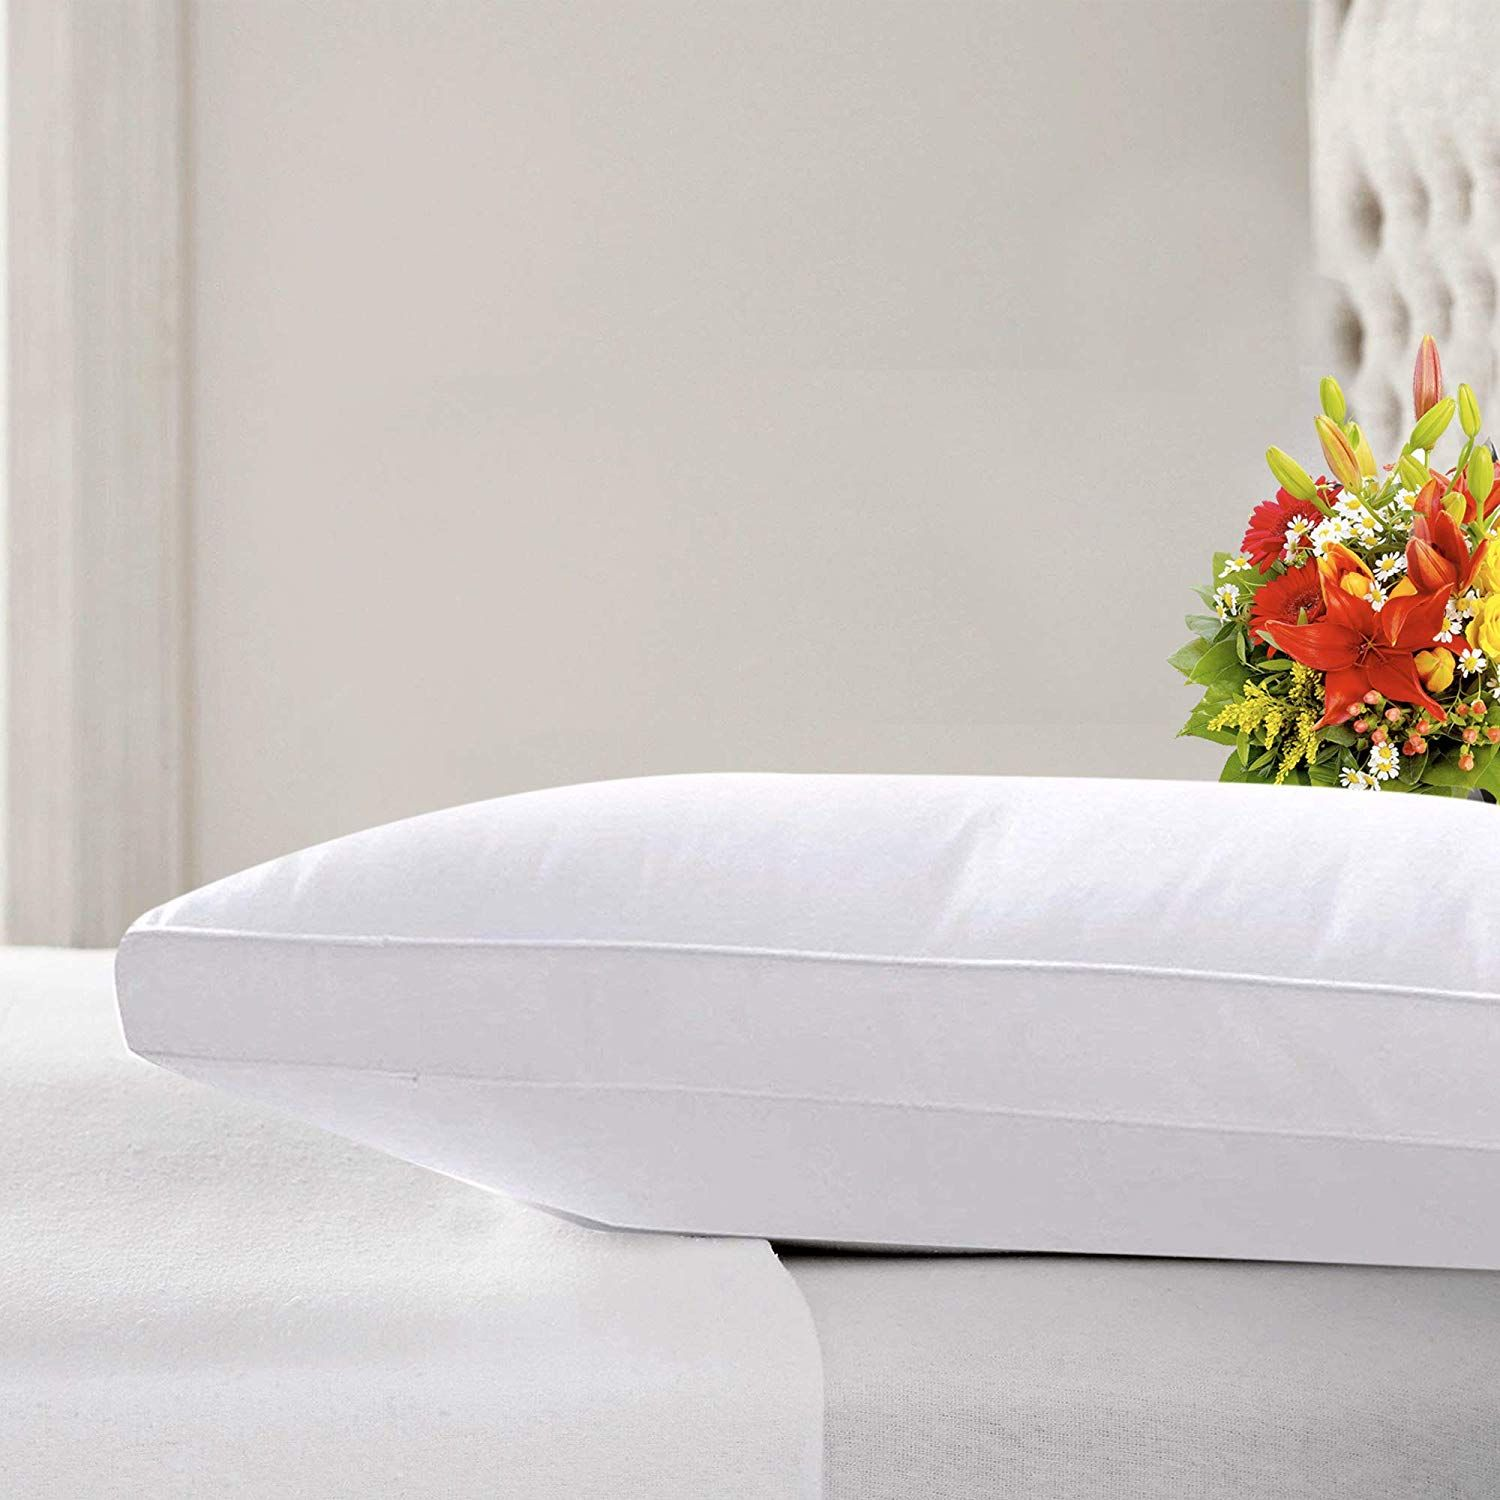 Luxury Mulberry Silk Filled Pillow Non Allergenic Pillow 48cm X 74cm With A Egyptian Cotton Protector 80 Pu Standard Pillow Bed Pillows